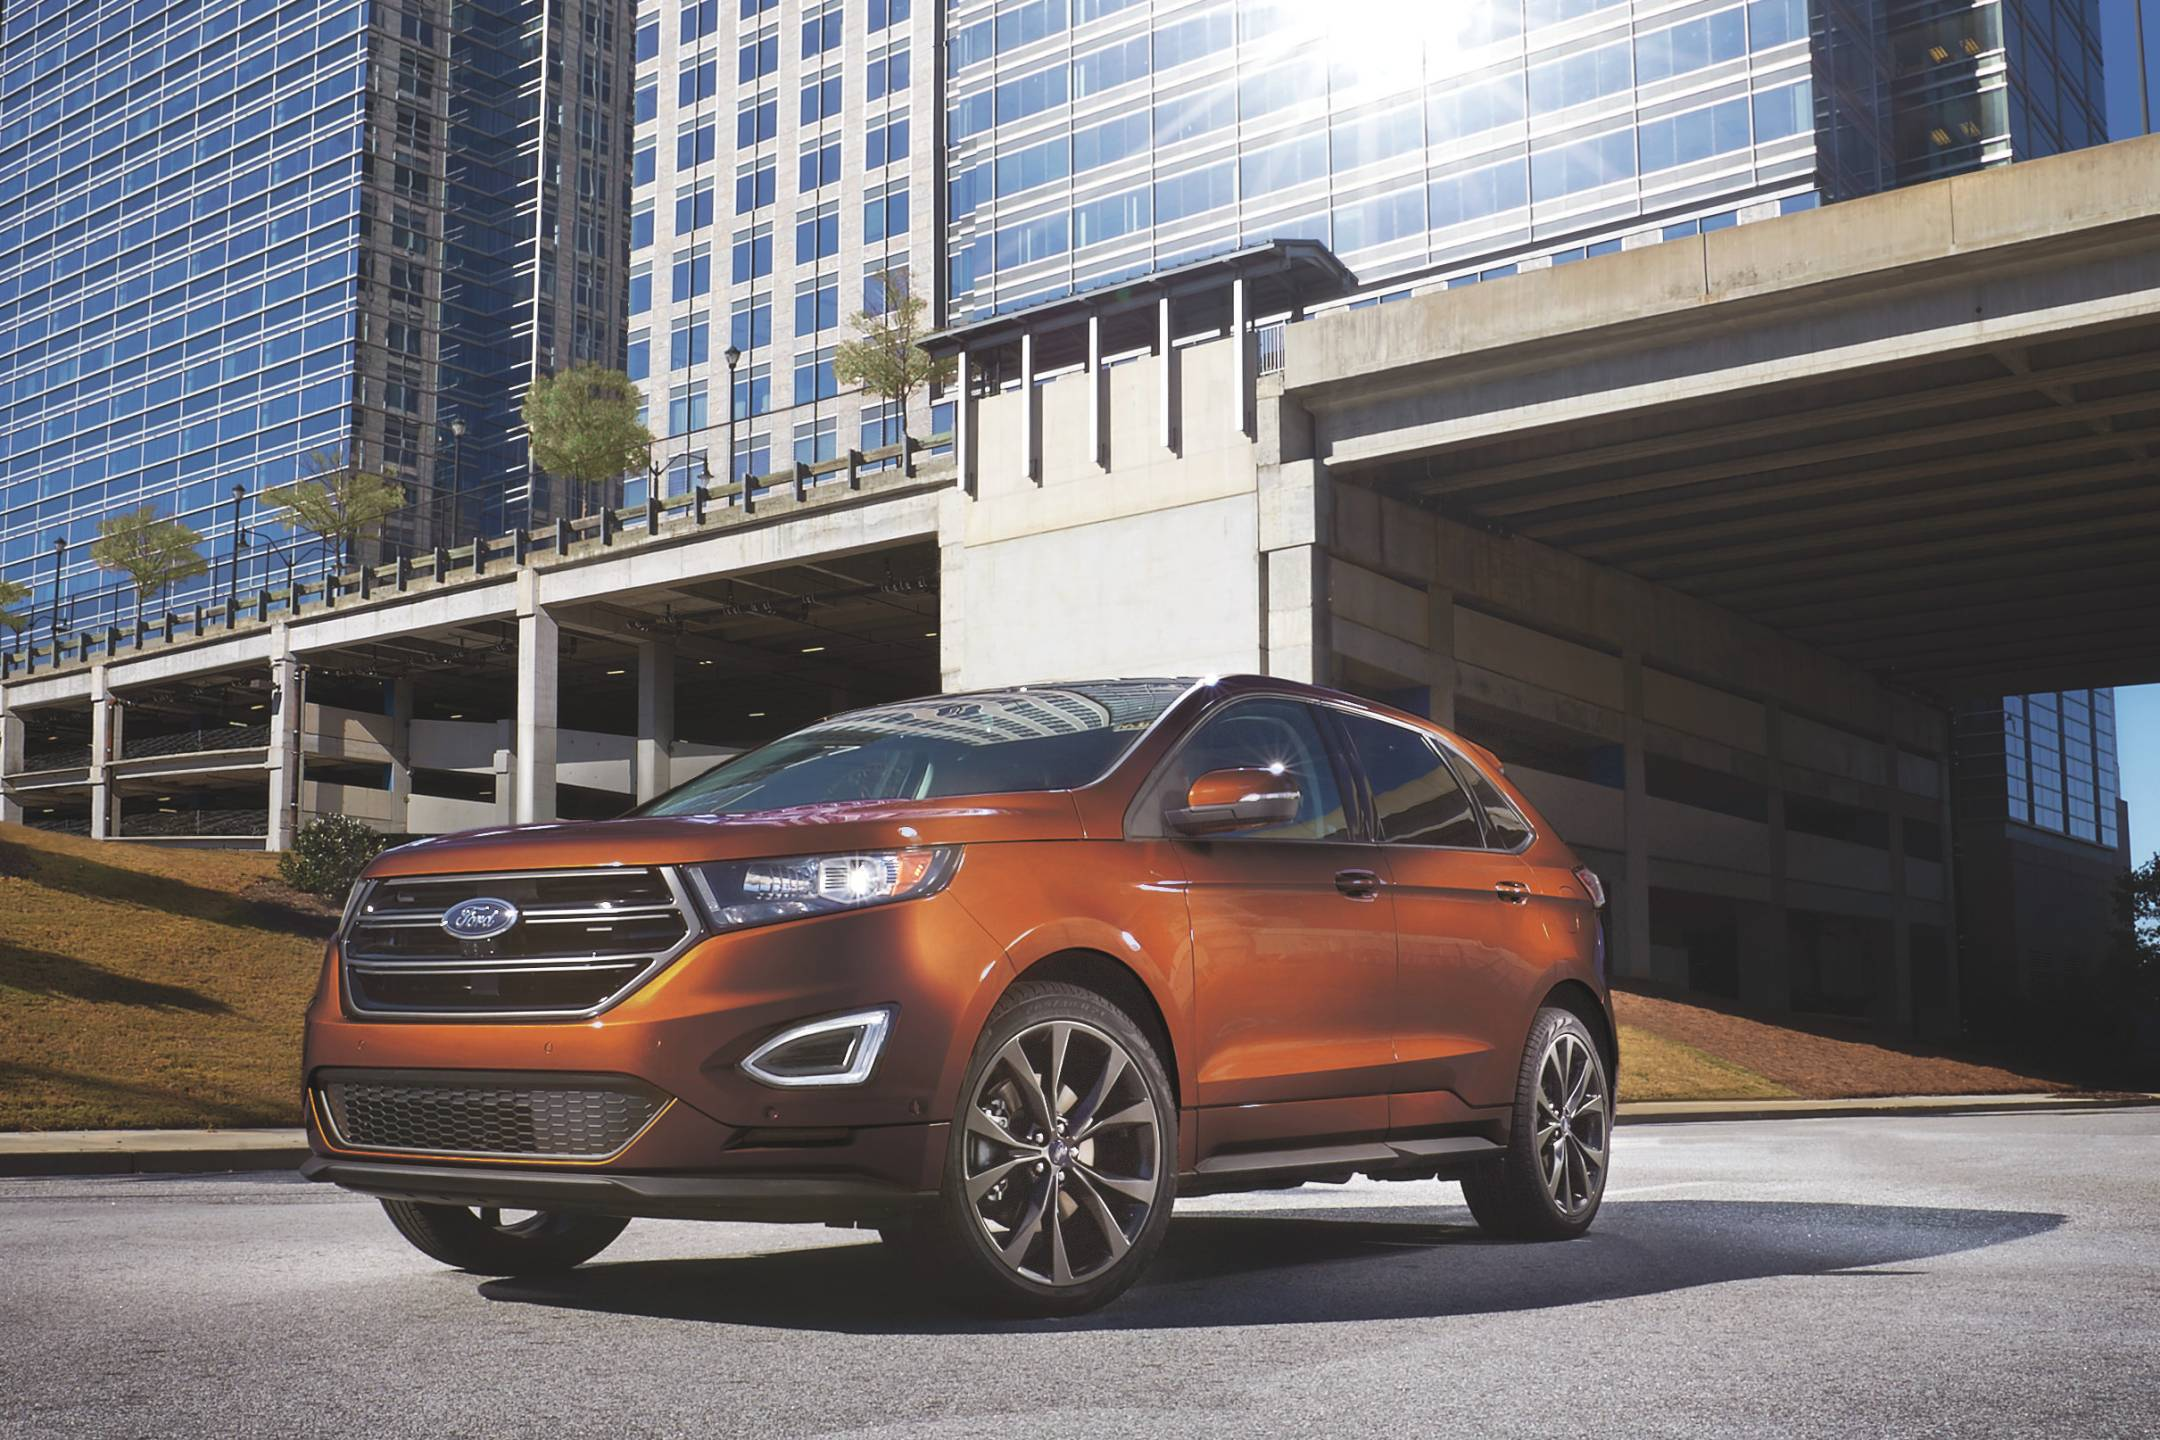 The 2018 Ford Edge